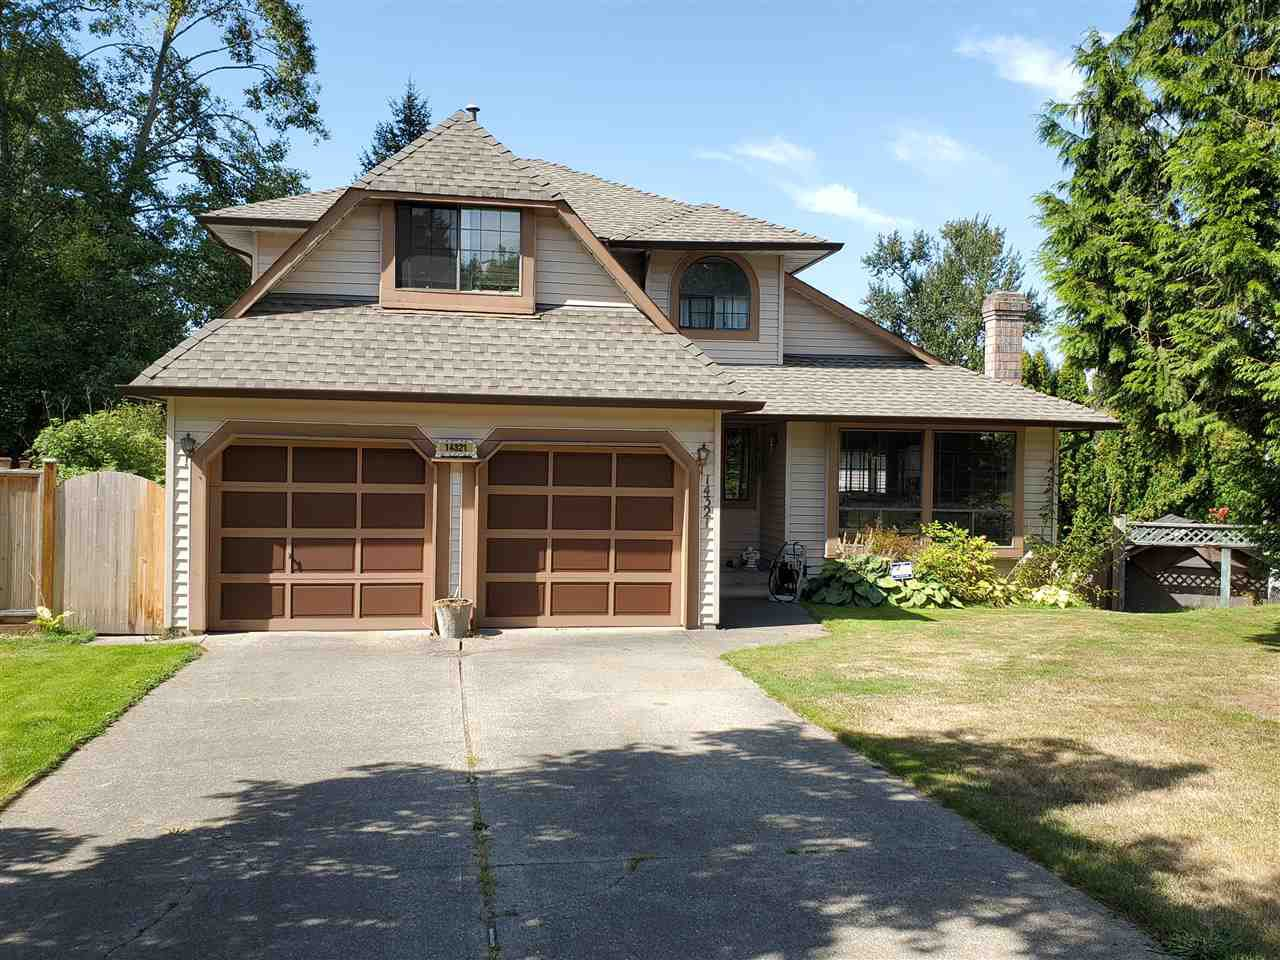 Main Photo: 14321 78A Avenue in Surrey: East Newton House for sale : MLS®# R2428762